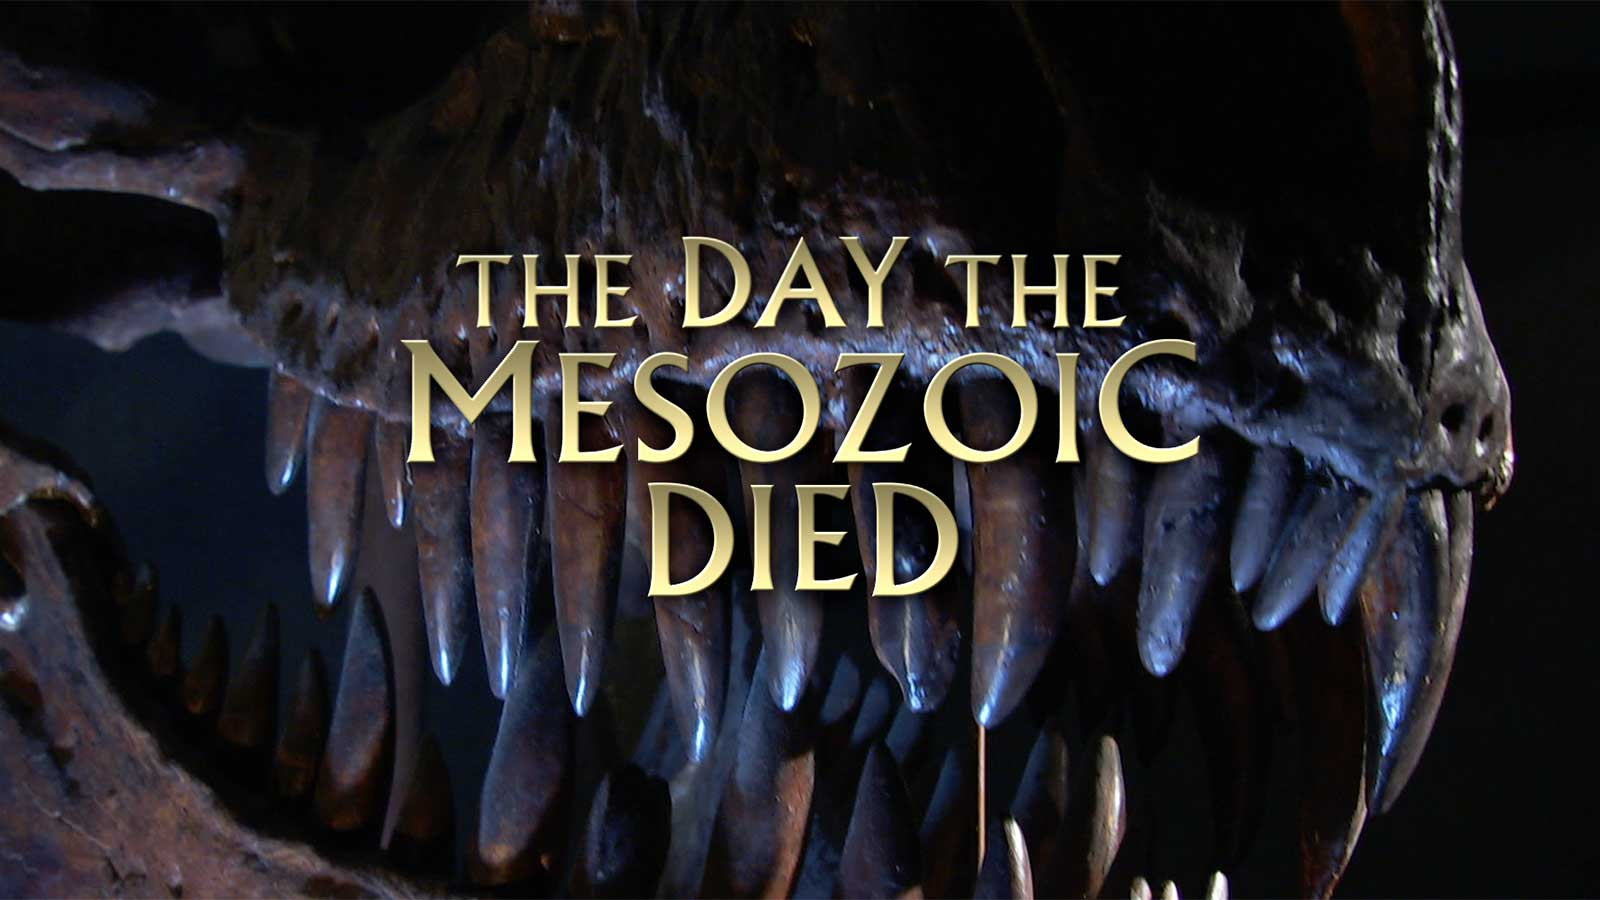 The Day The Mesozoicd